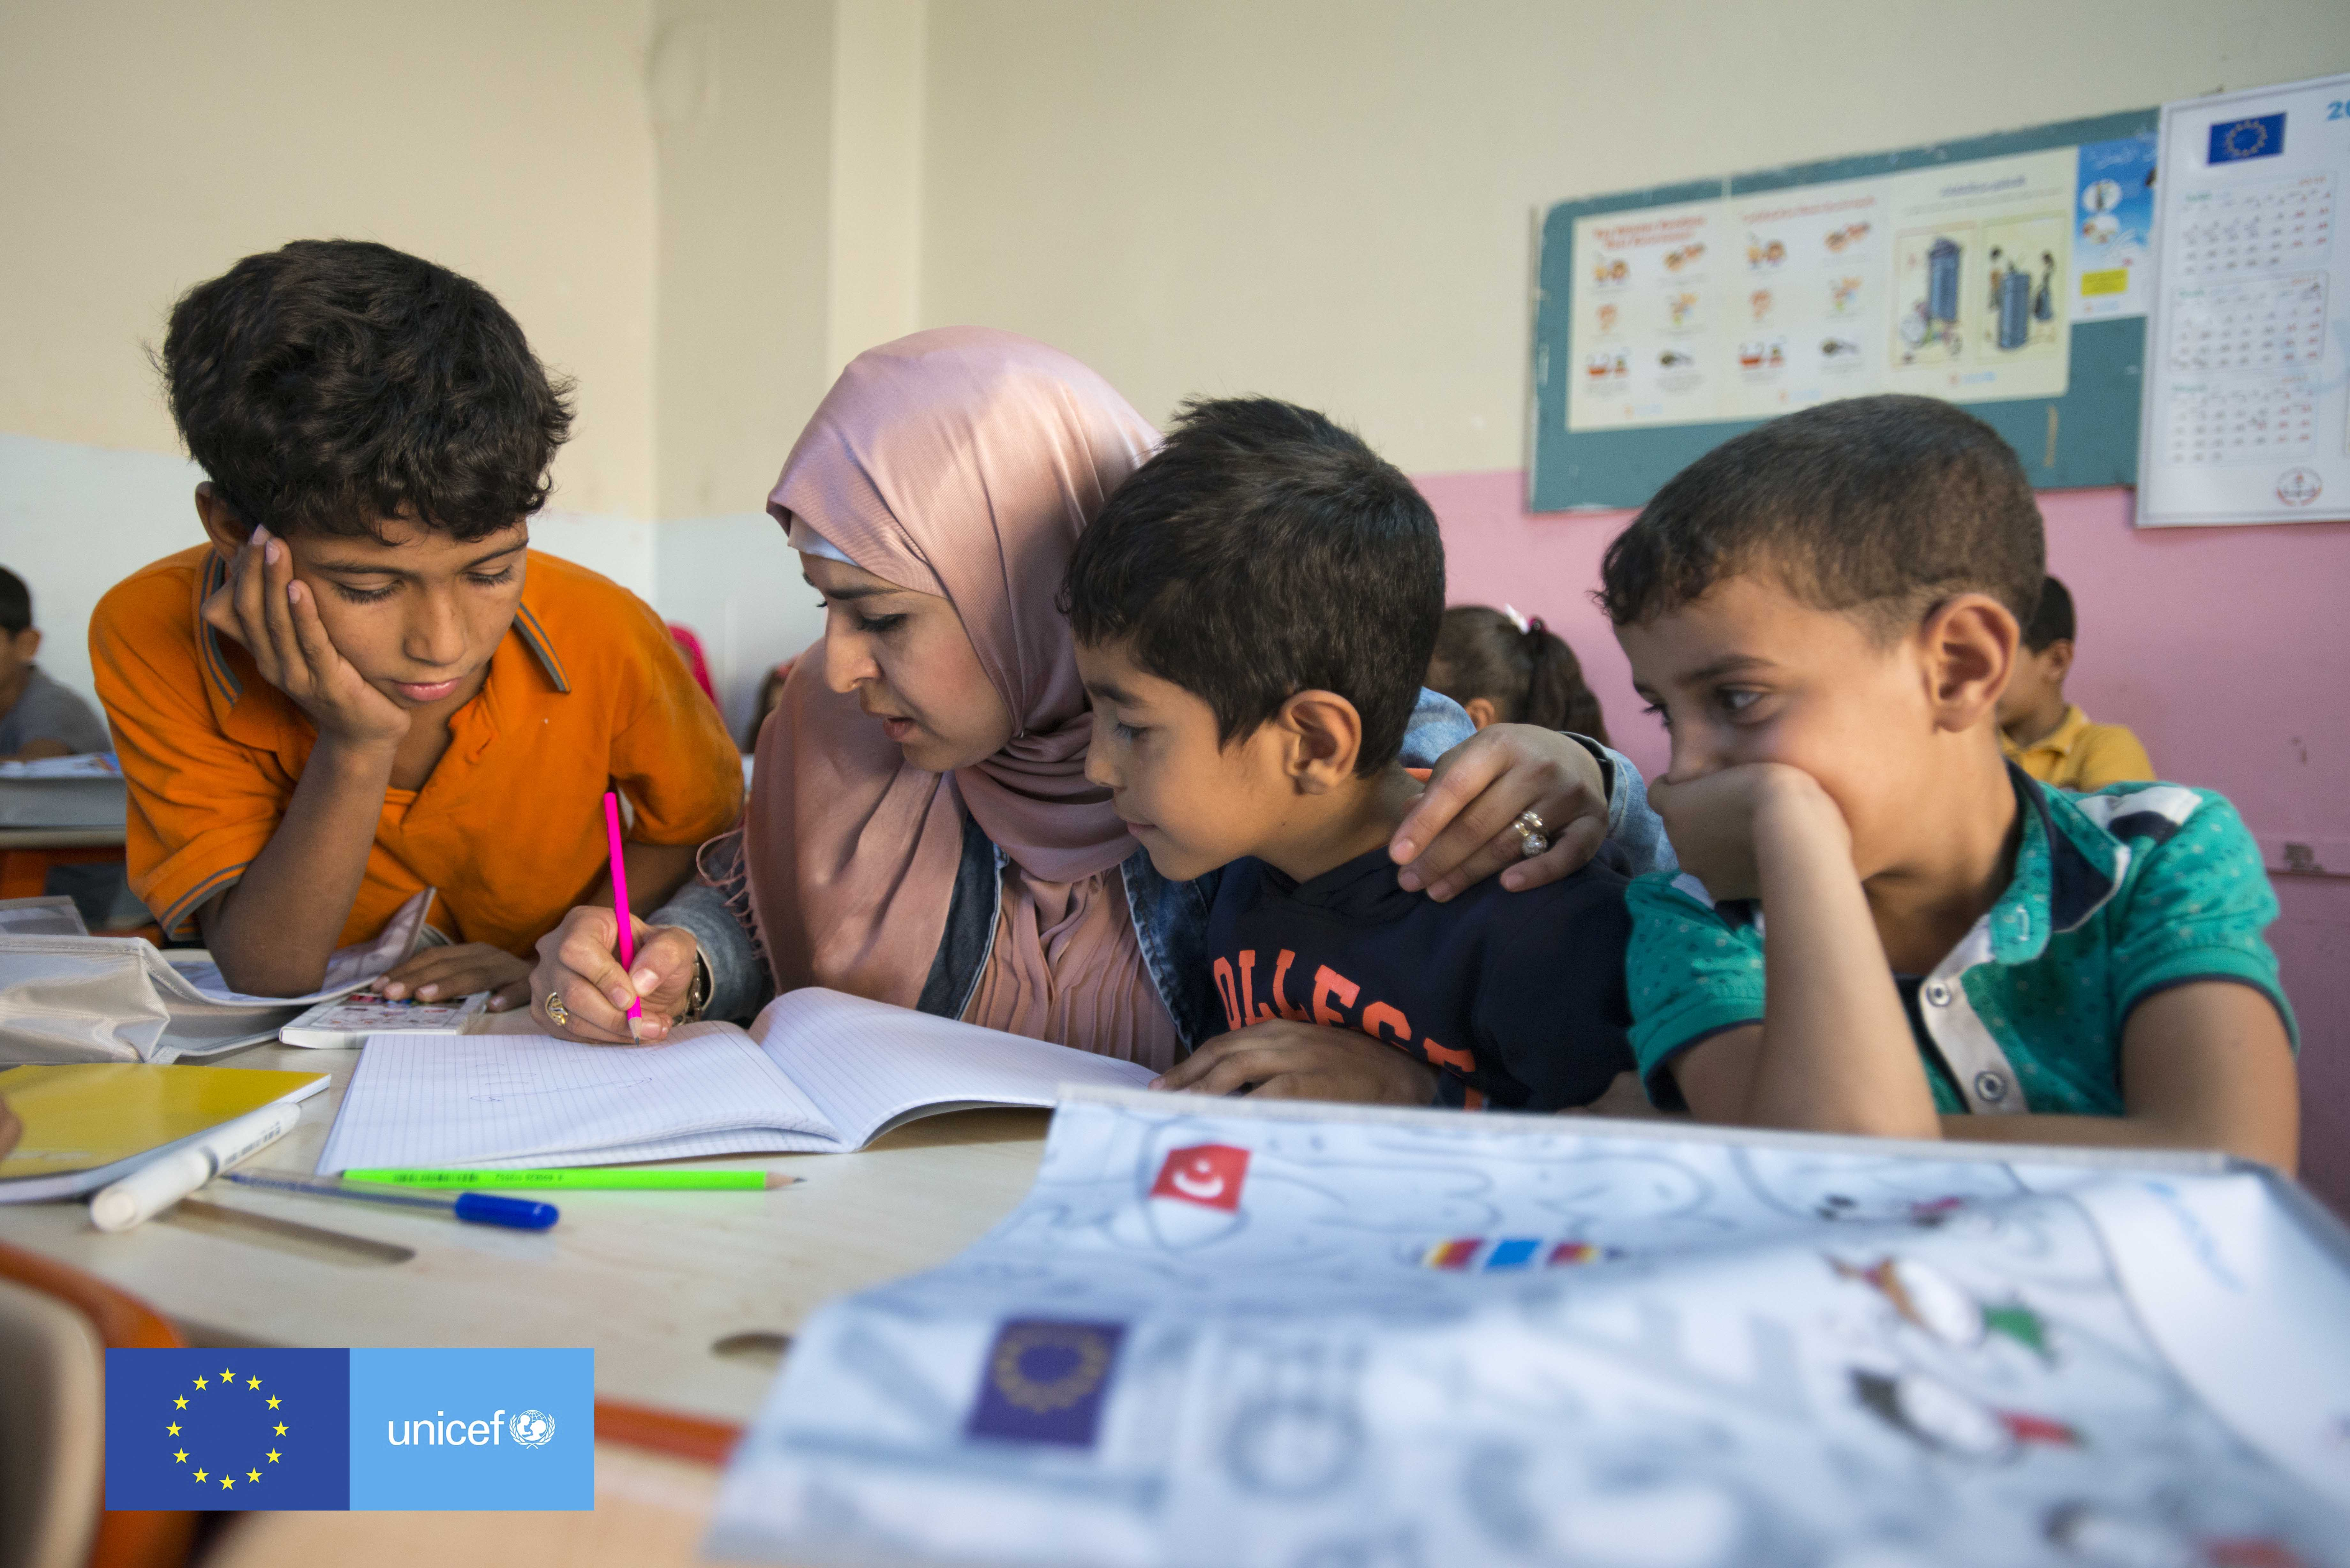 Syrian teacher Esma Tabit works with a group of children in a classroom at the Temporary Education Centre of Yenice in Sanliurfa, Turkey, October 2016.  Credit: UNICEF Turkey/2016/Rich